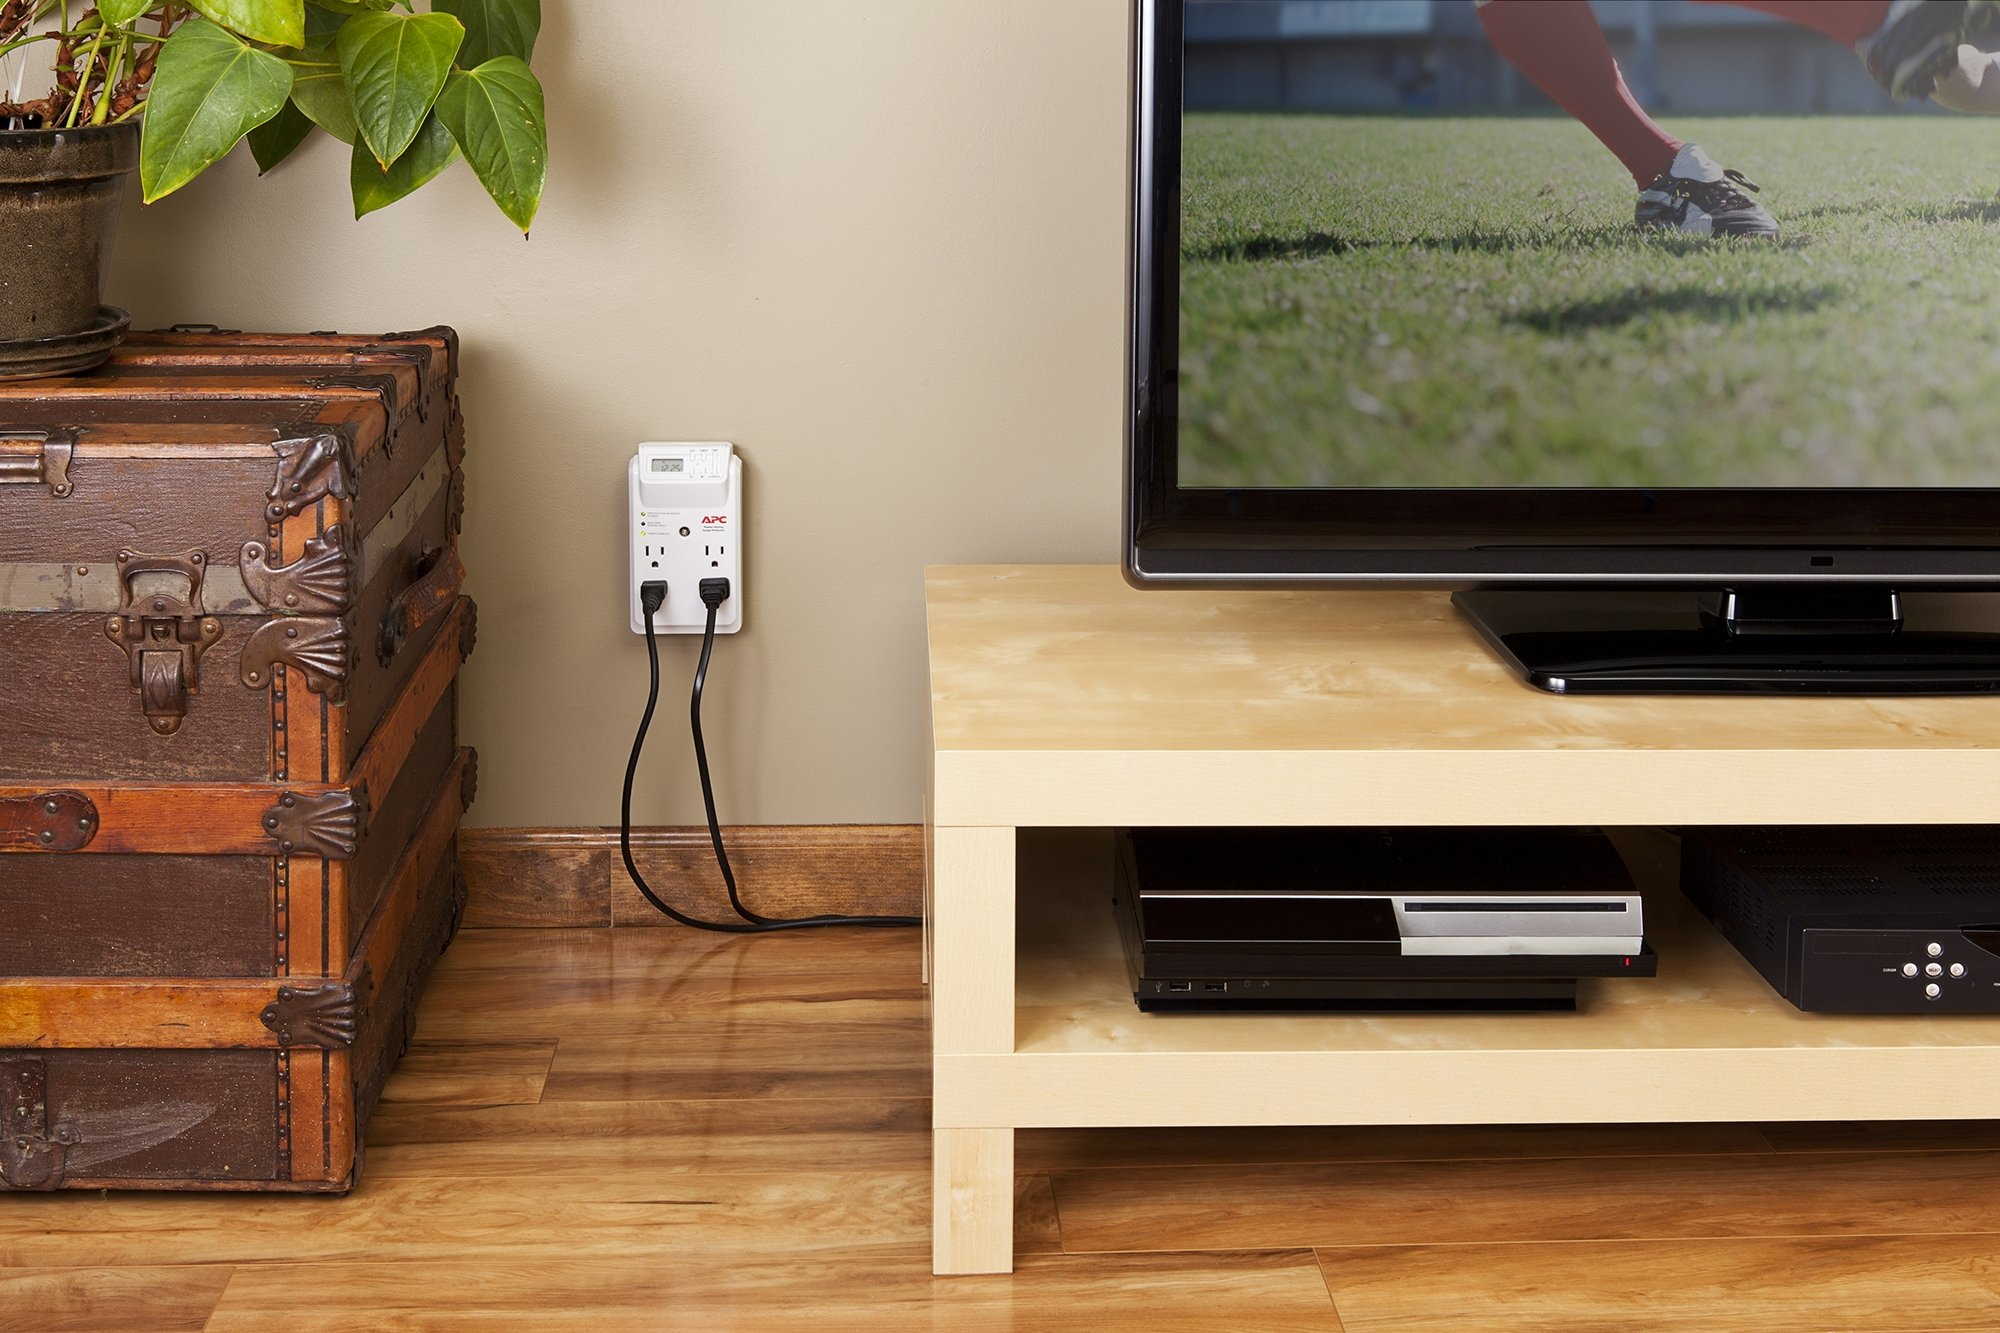 APC 4-Outlet Wall Surge Protector with Timer-Controlled Outlets, SurgeArrest Essential (P4GC)